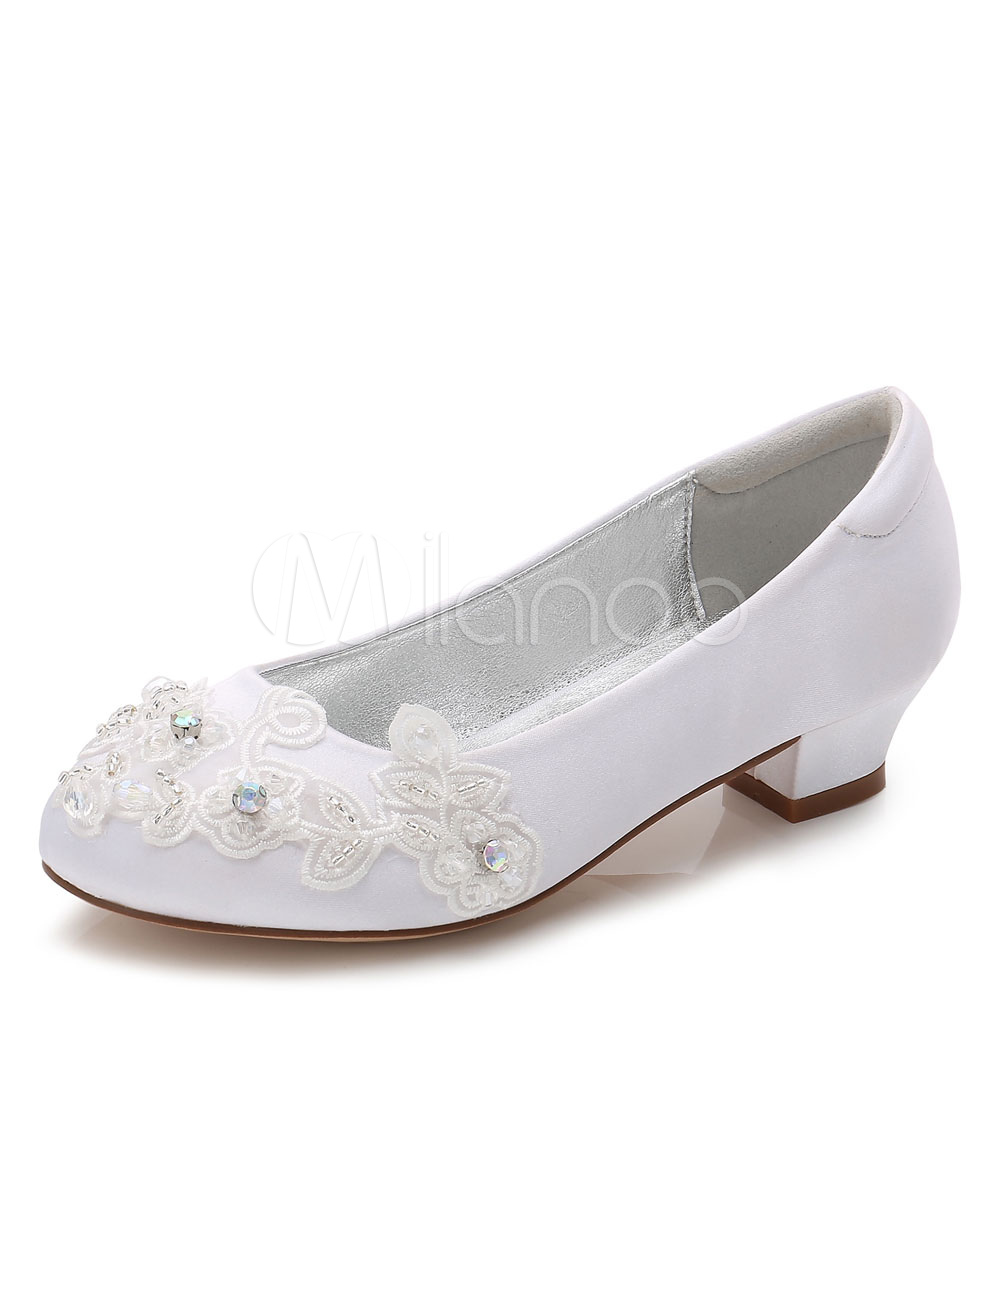 Flower Girls Shoes White Round Toe Chunky Heel Flowers Pumps thumbnail